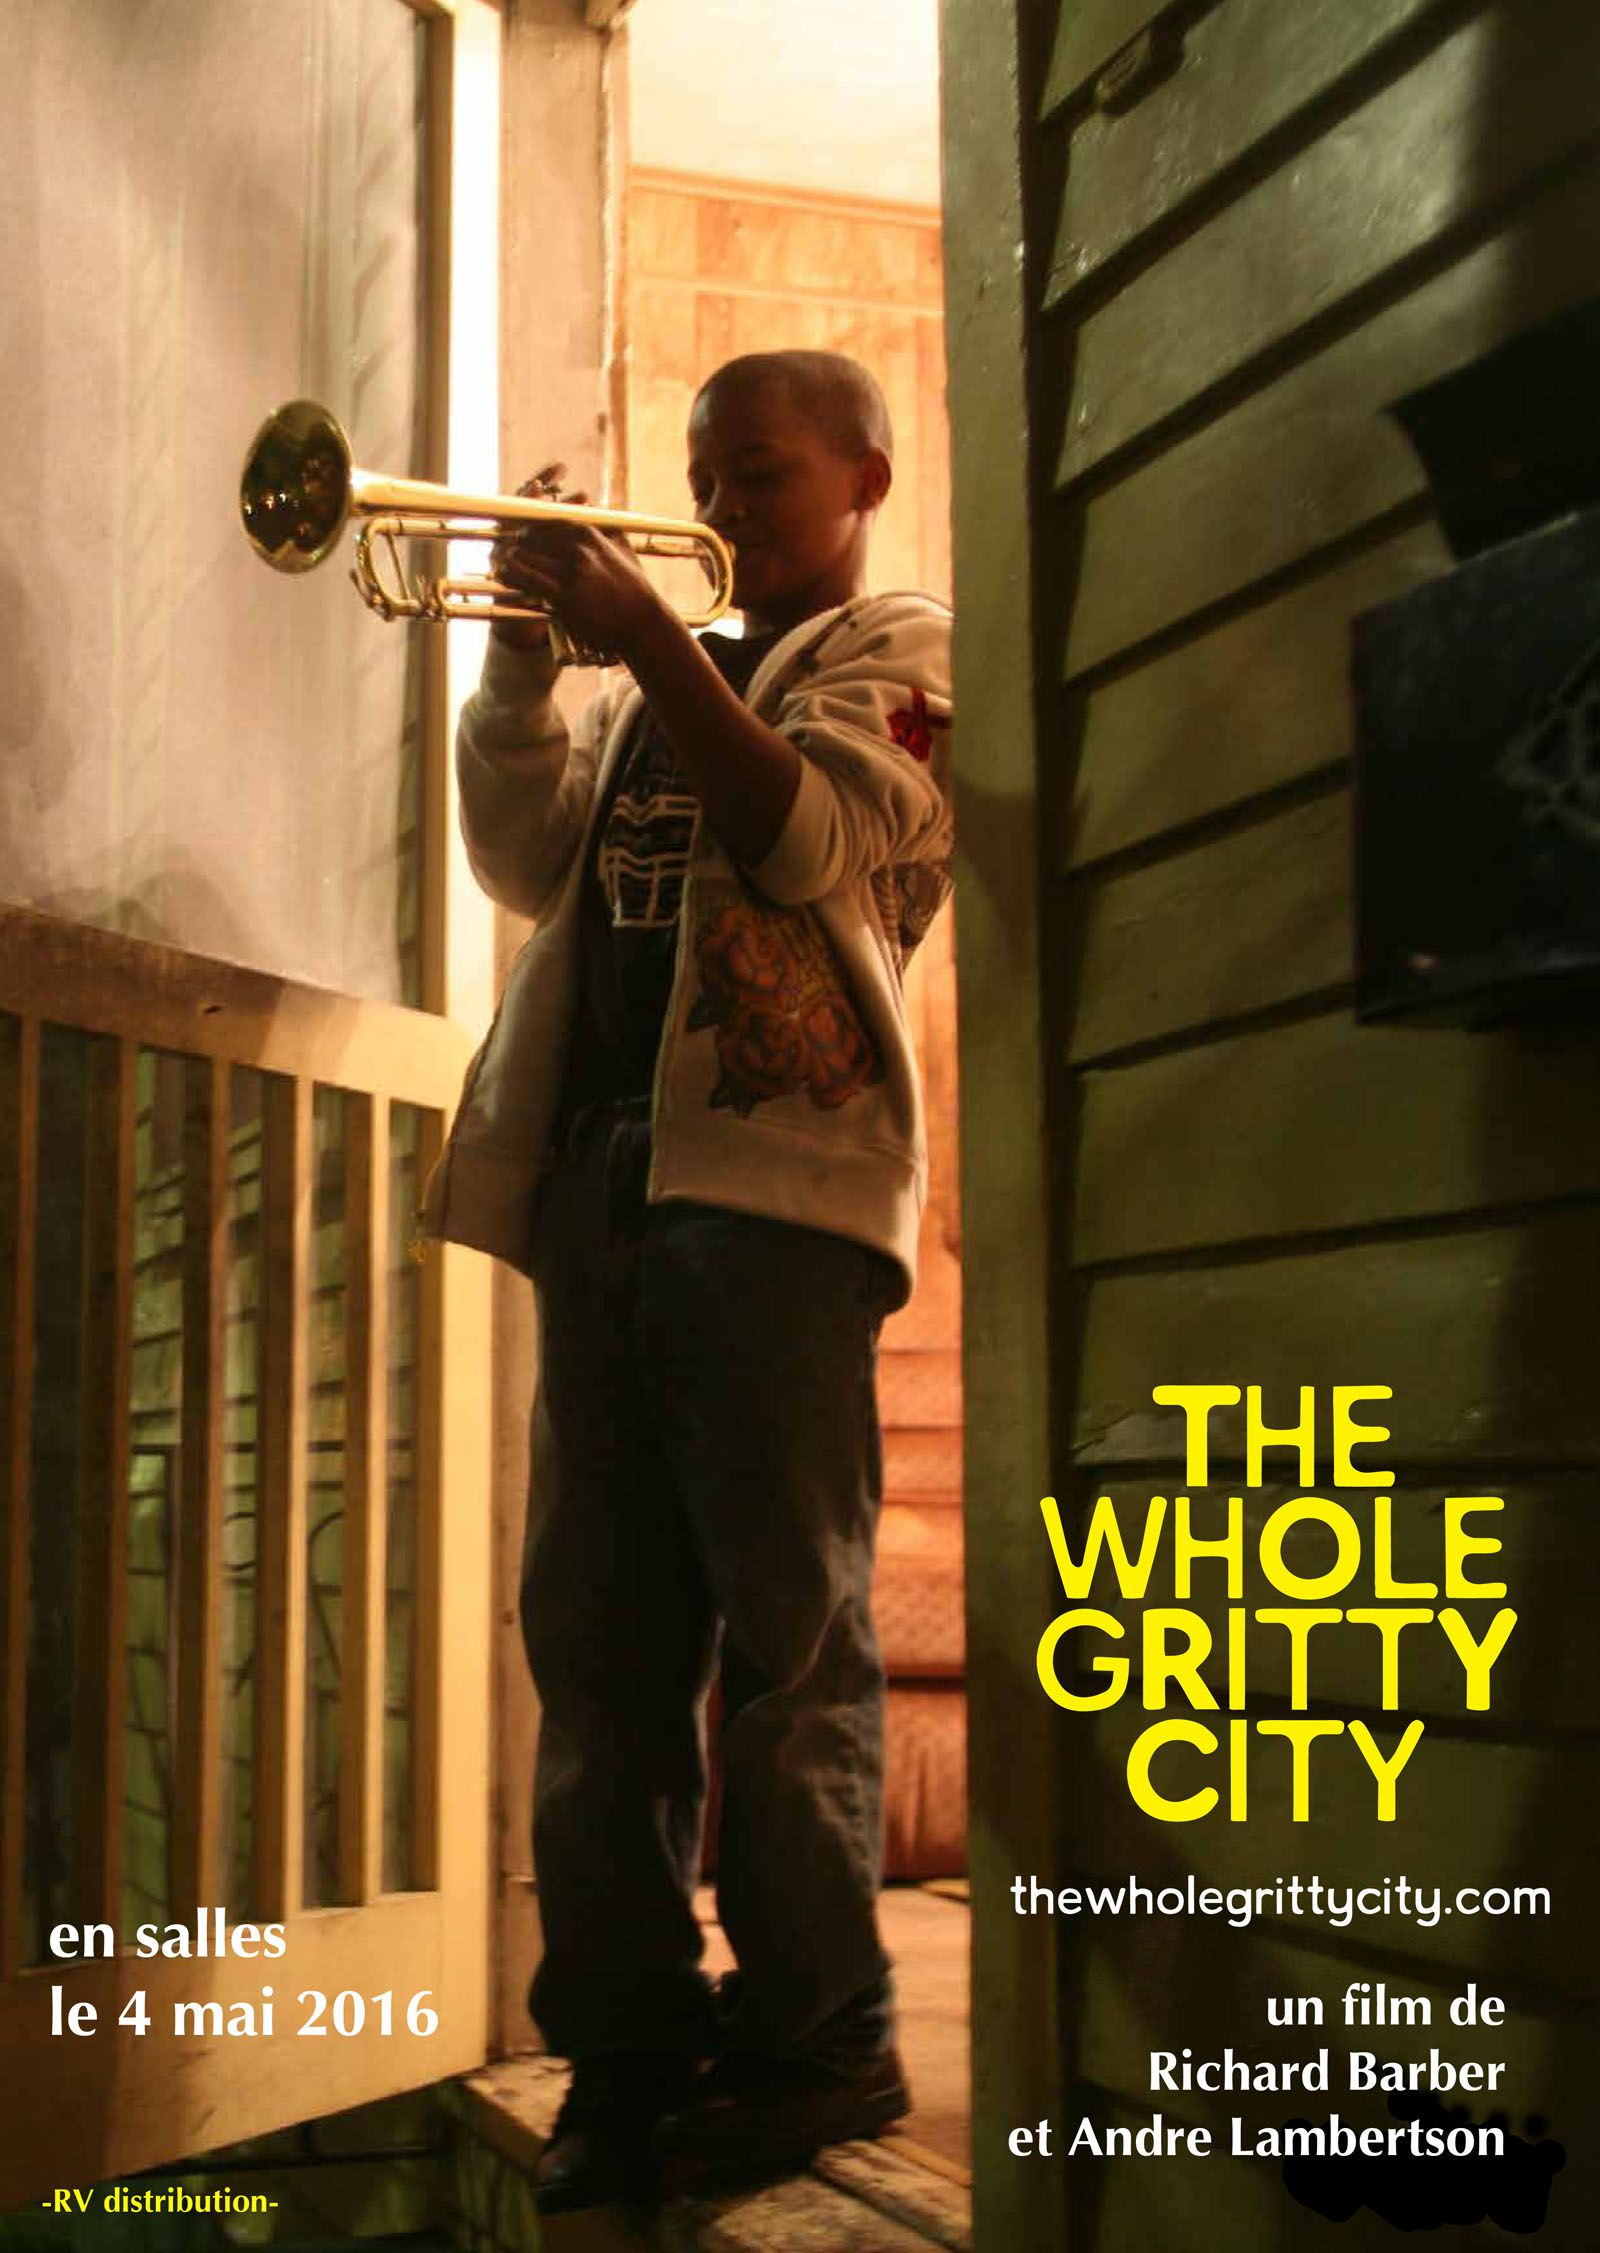 The Whole Gritty City - Documentaire (2013)